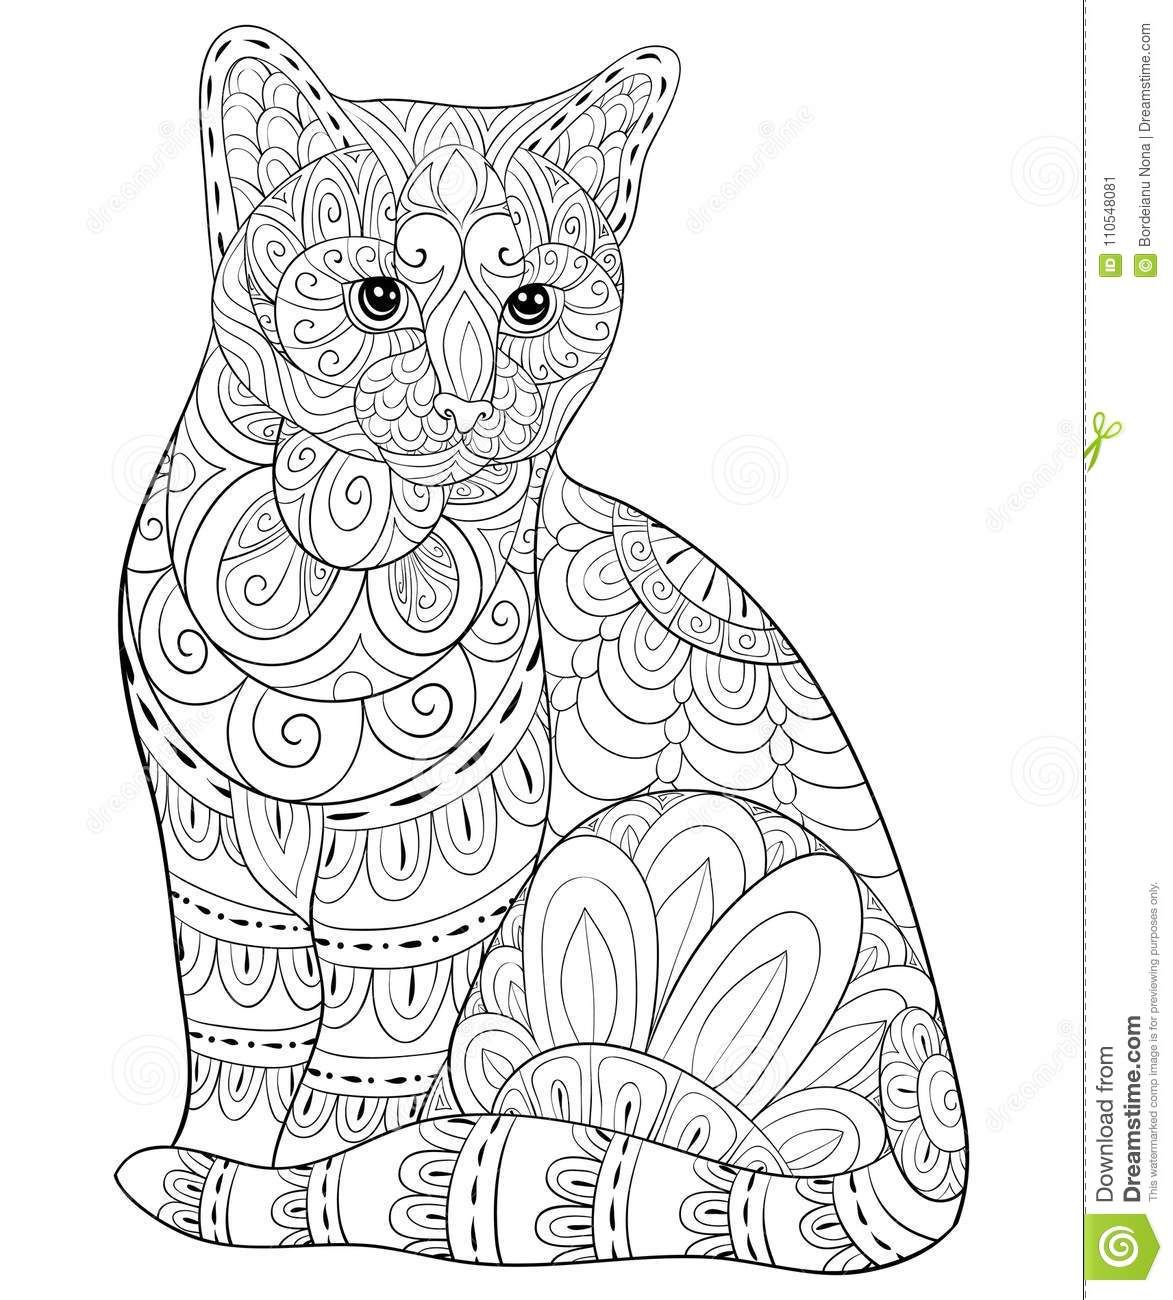 Illustration About A Cute Cat With Floral Ornamentson The Background For Relaxing Poster Design Wallp Cat Coloring Book Cat Coloring Page Animal Coloring Pages